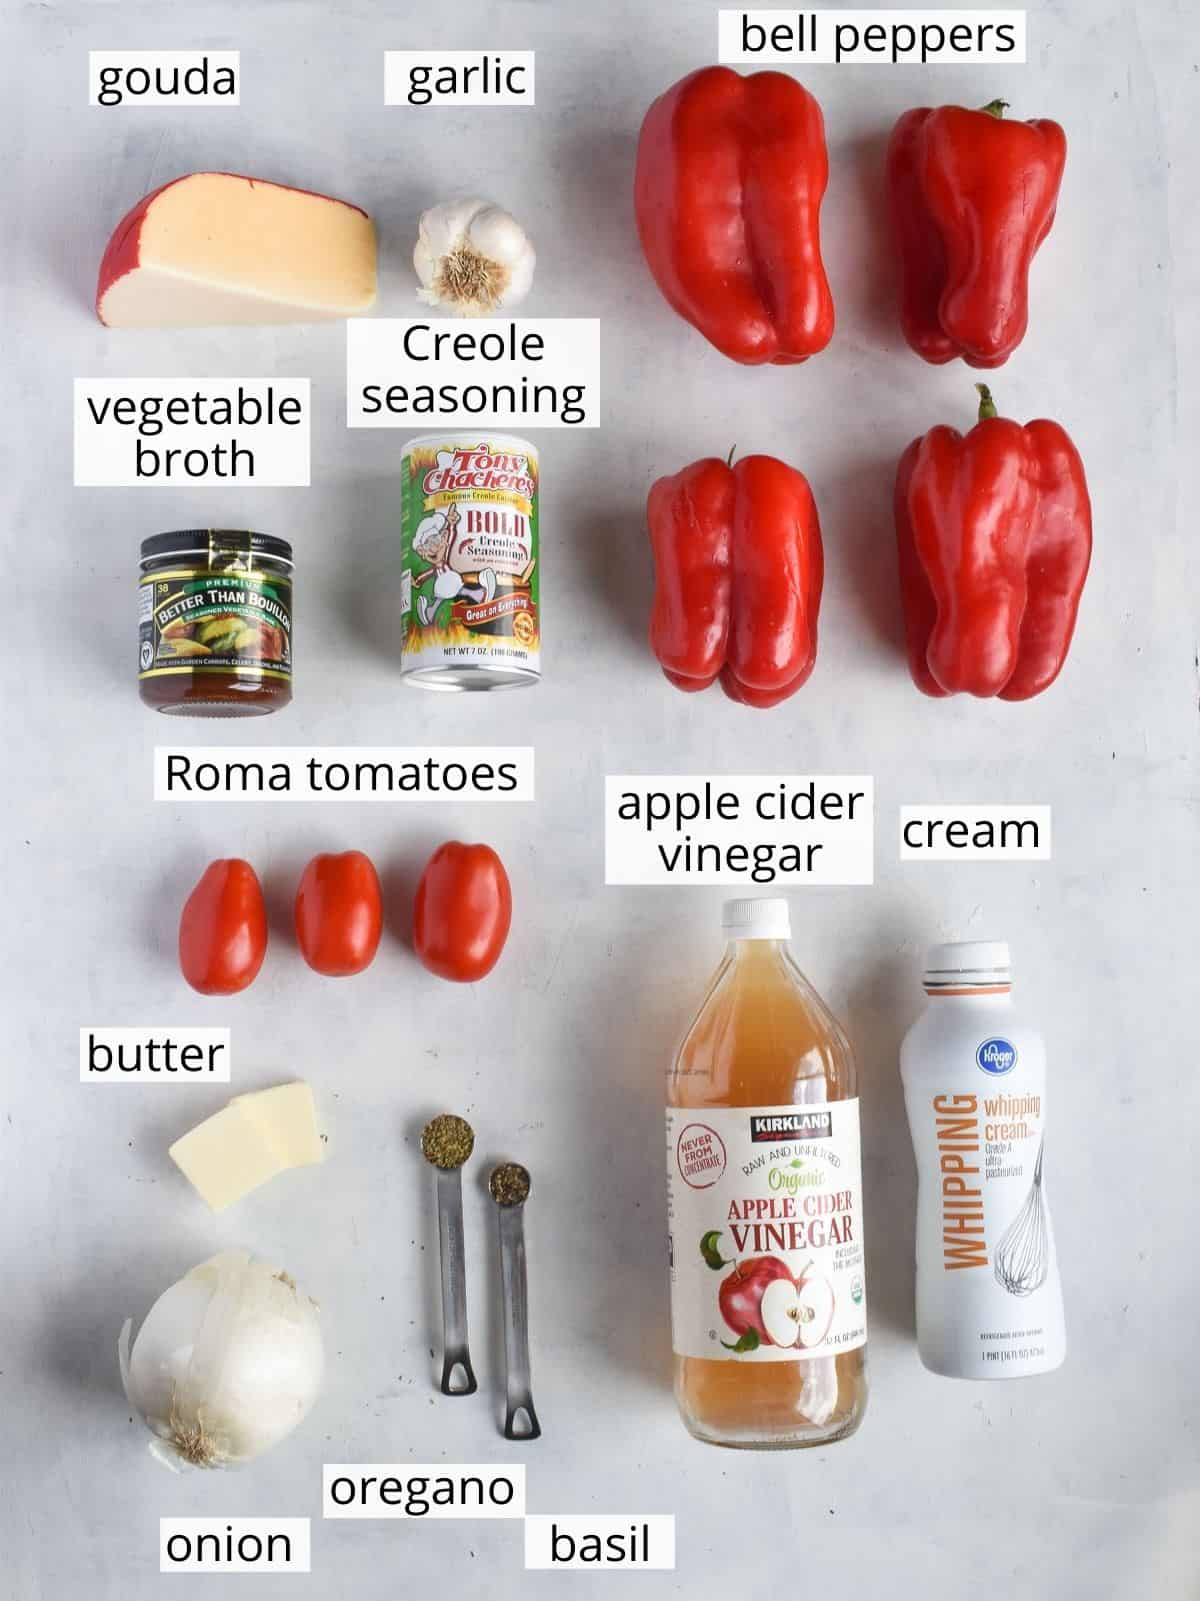 ingredients laid out with titles below each item.